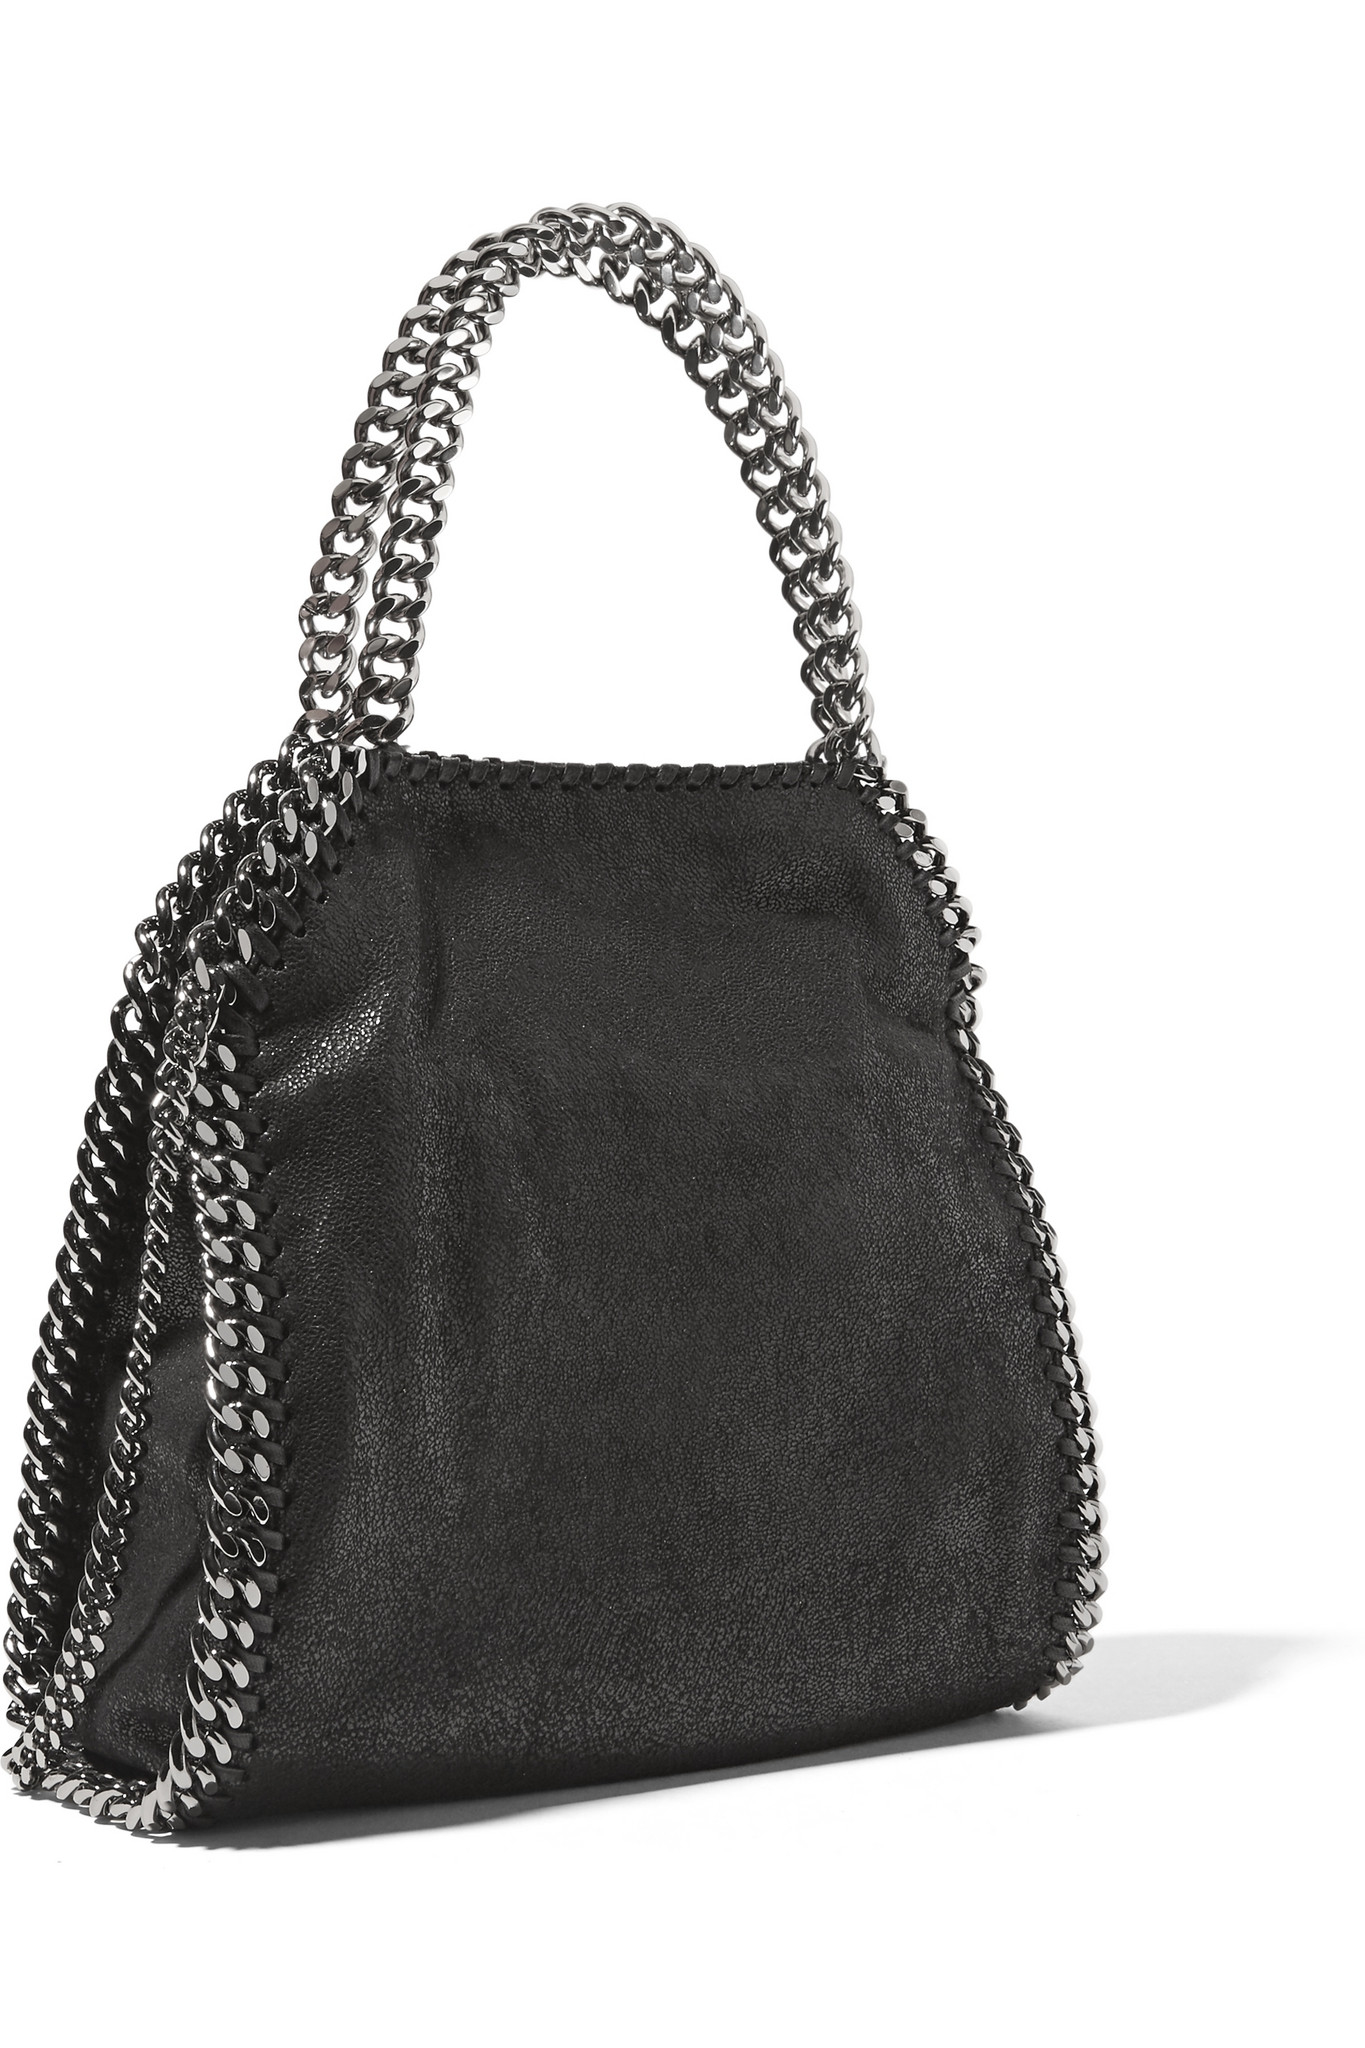 caad7bb81a Lyst - Stella Mccartney The Falabella Mini Faux Brushed-leather ...